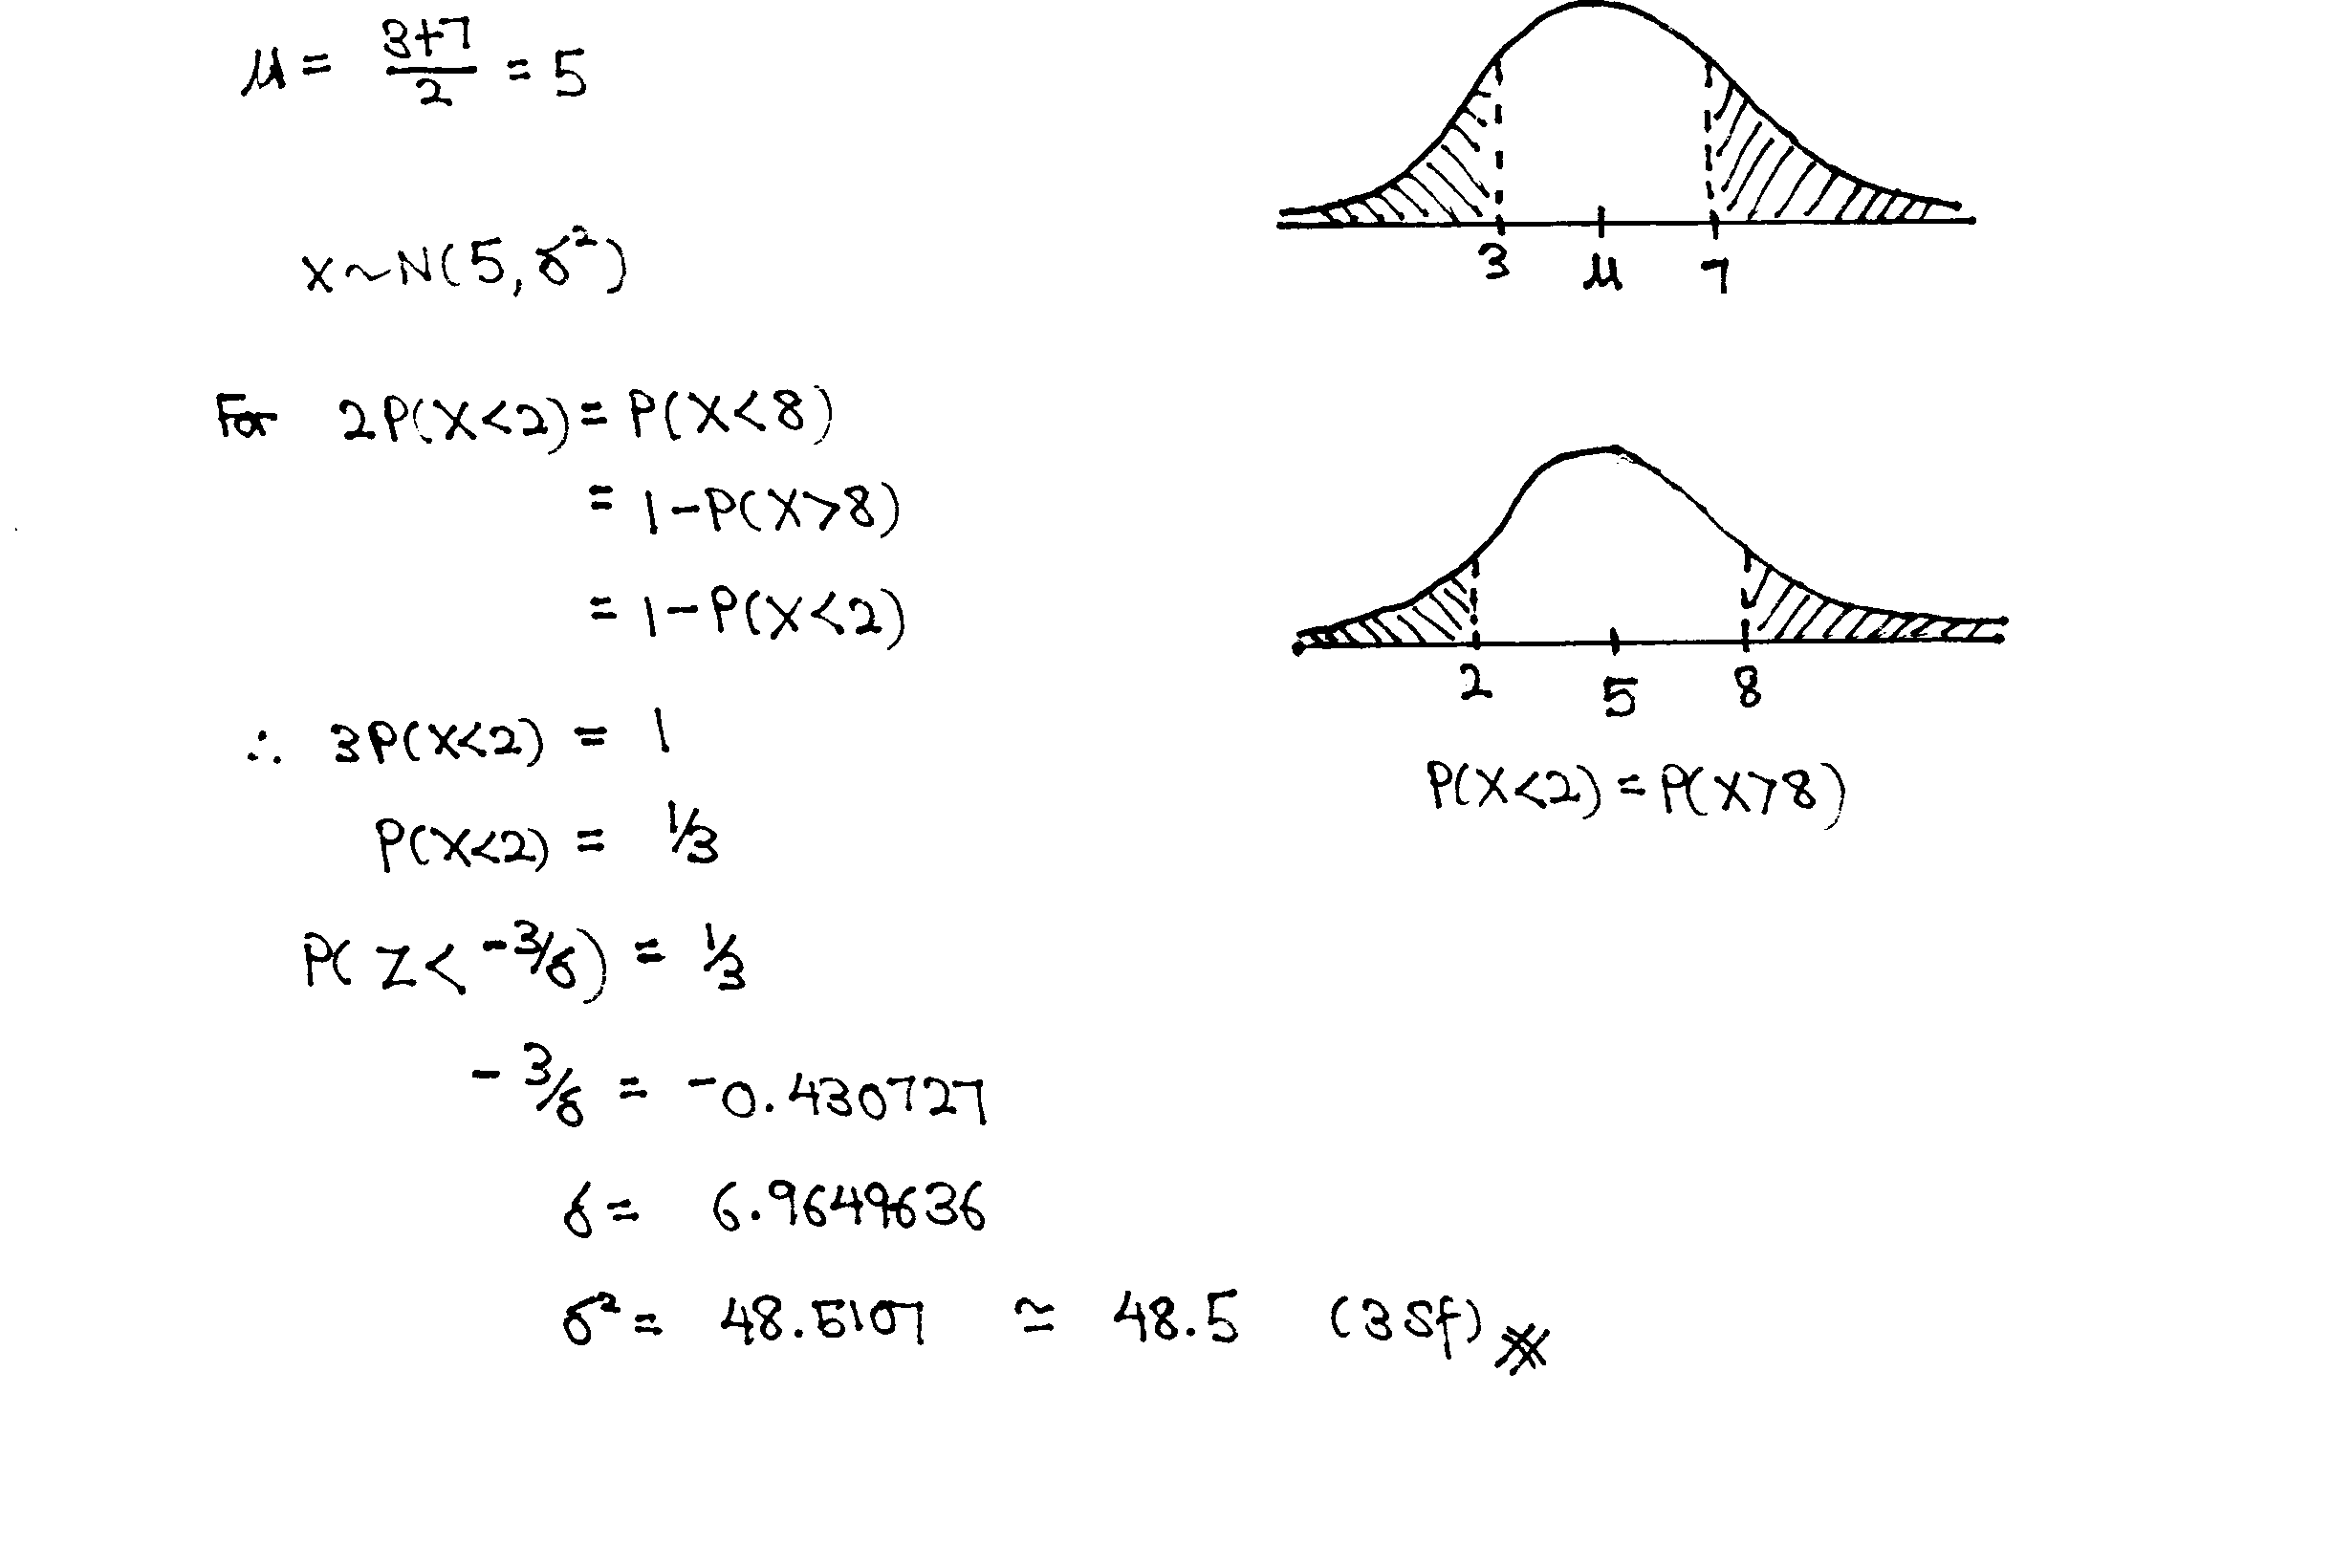 Nyjc Normal Distribution Tutorial Q7 Solution